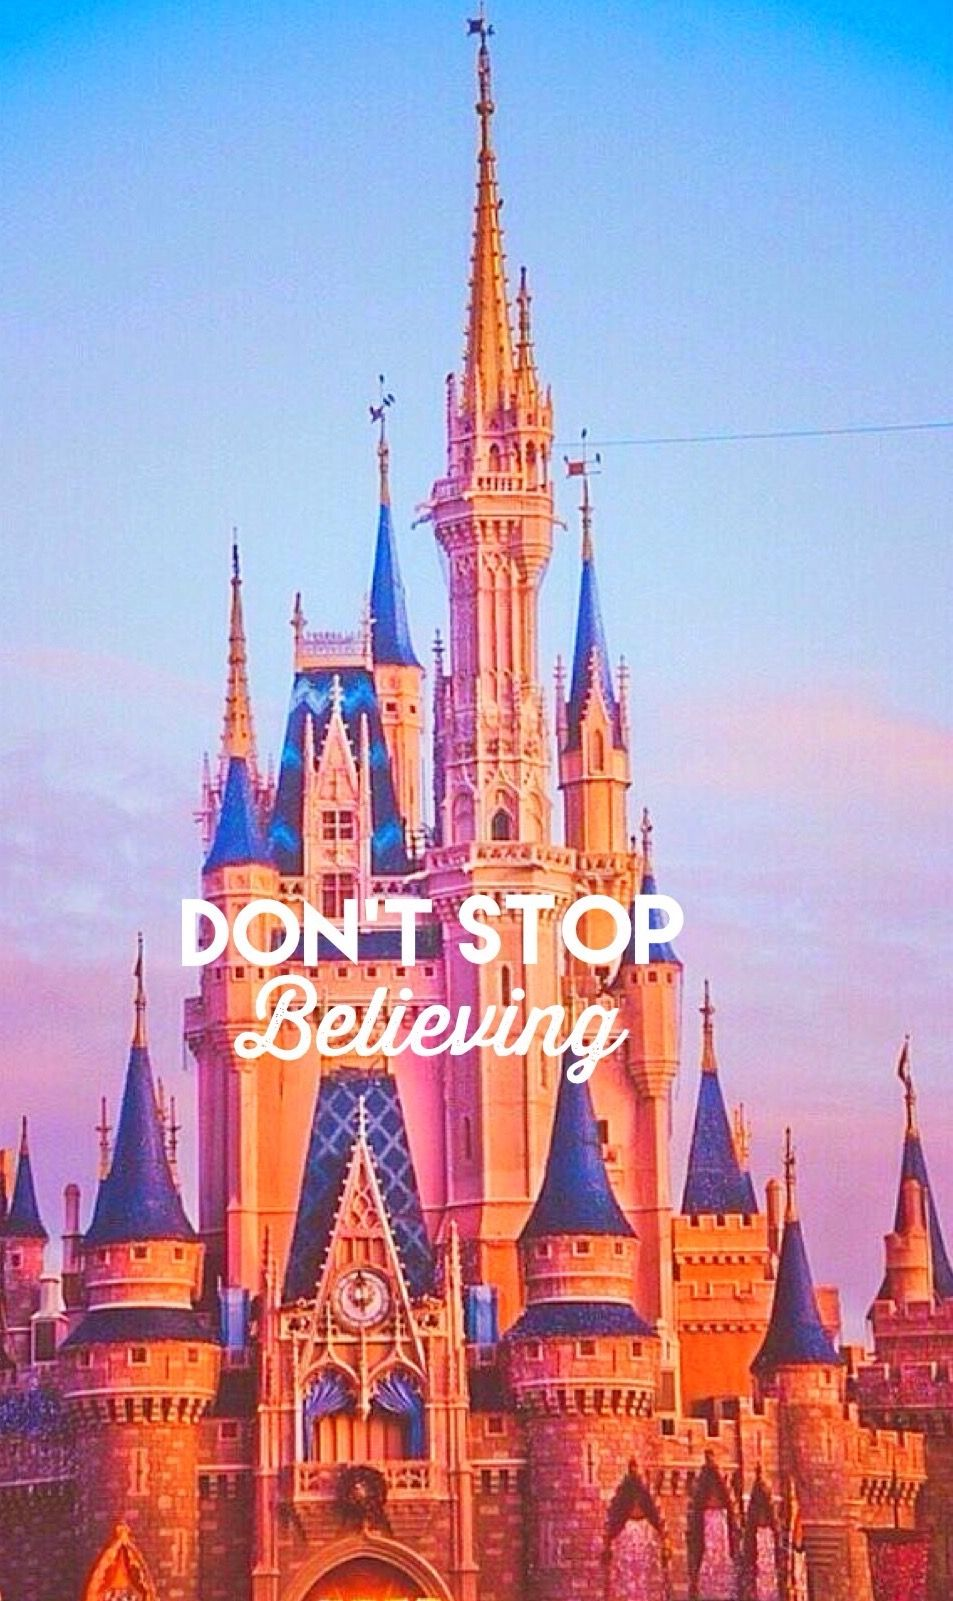 No Matter How Your Heart Is Grieving If You Keep On Believing The Dreams Believe Will Come True Cinderella